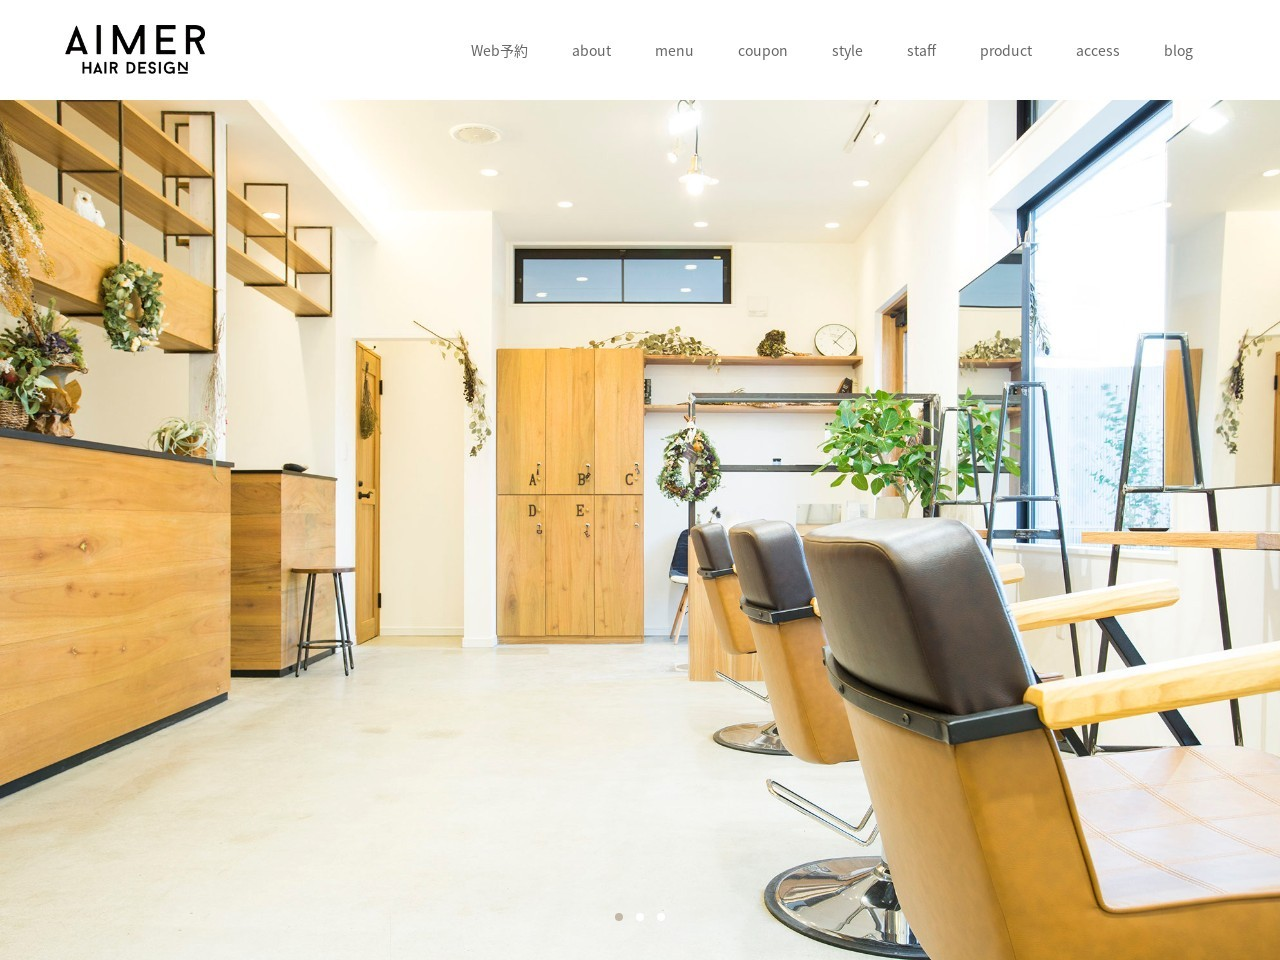 AIMER HAIR DESIGN